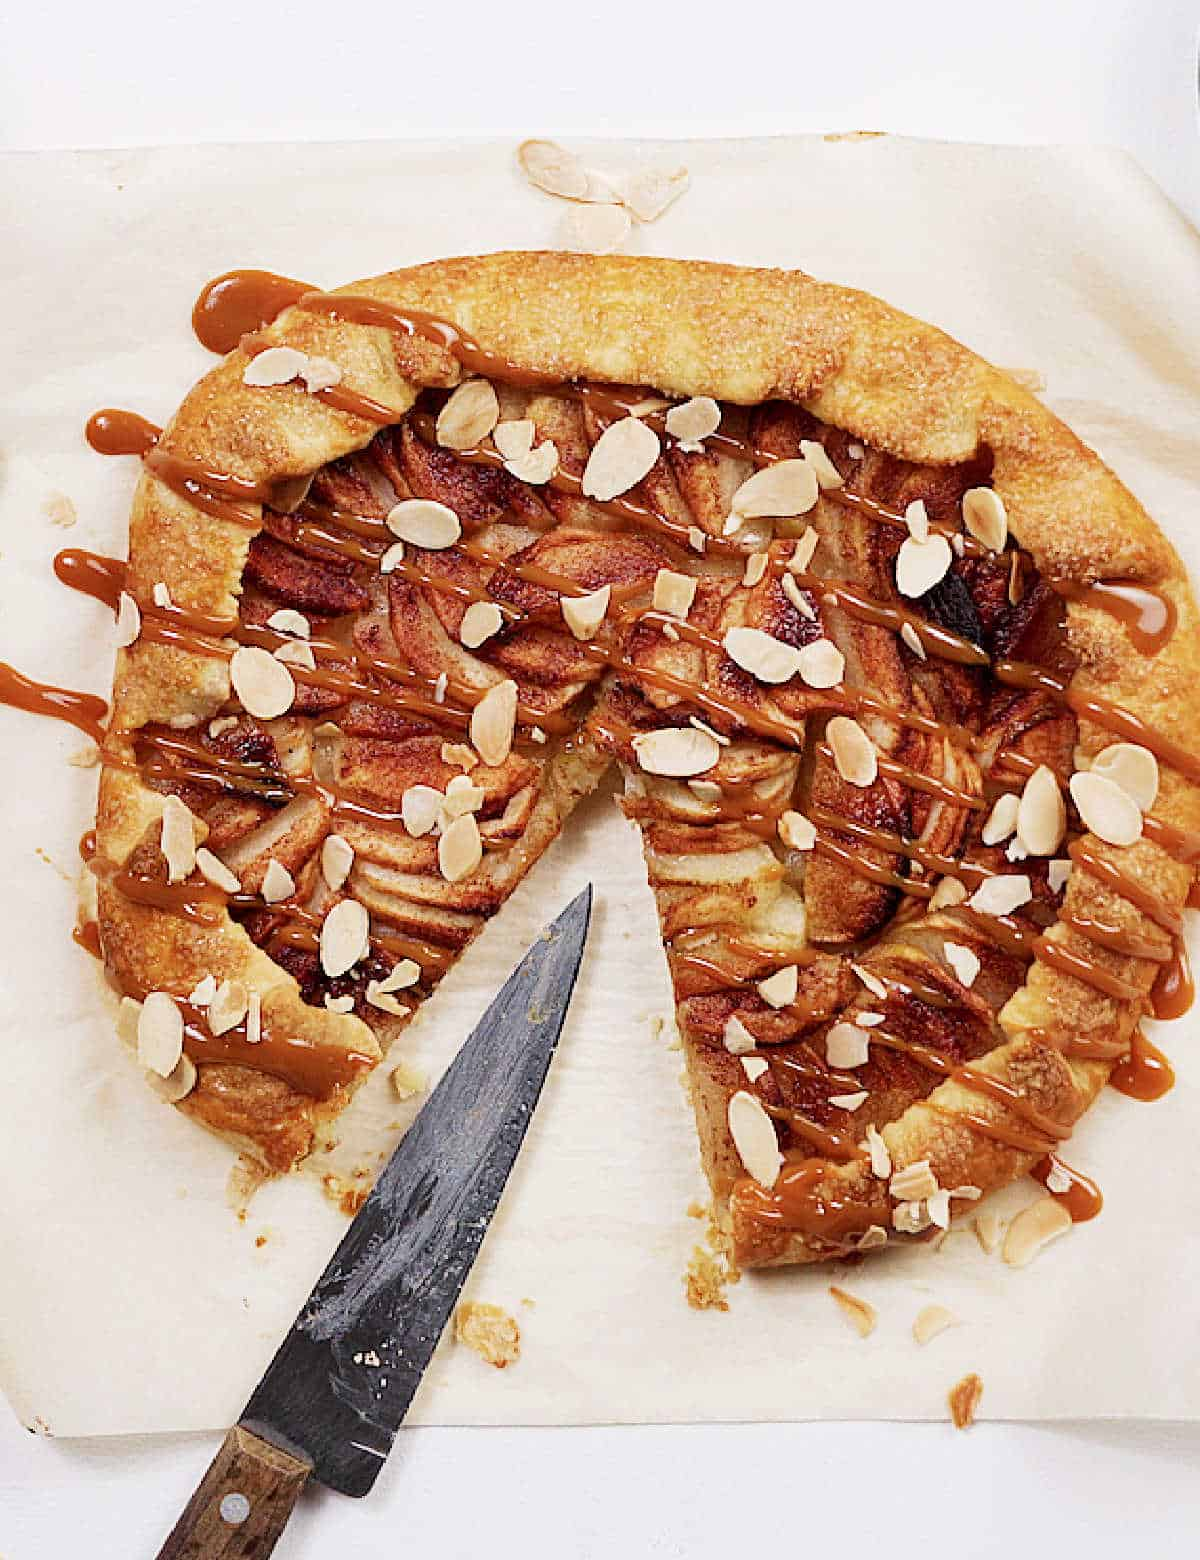 Top view of apple caramel galette with one missing slice, a knife, white surface